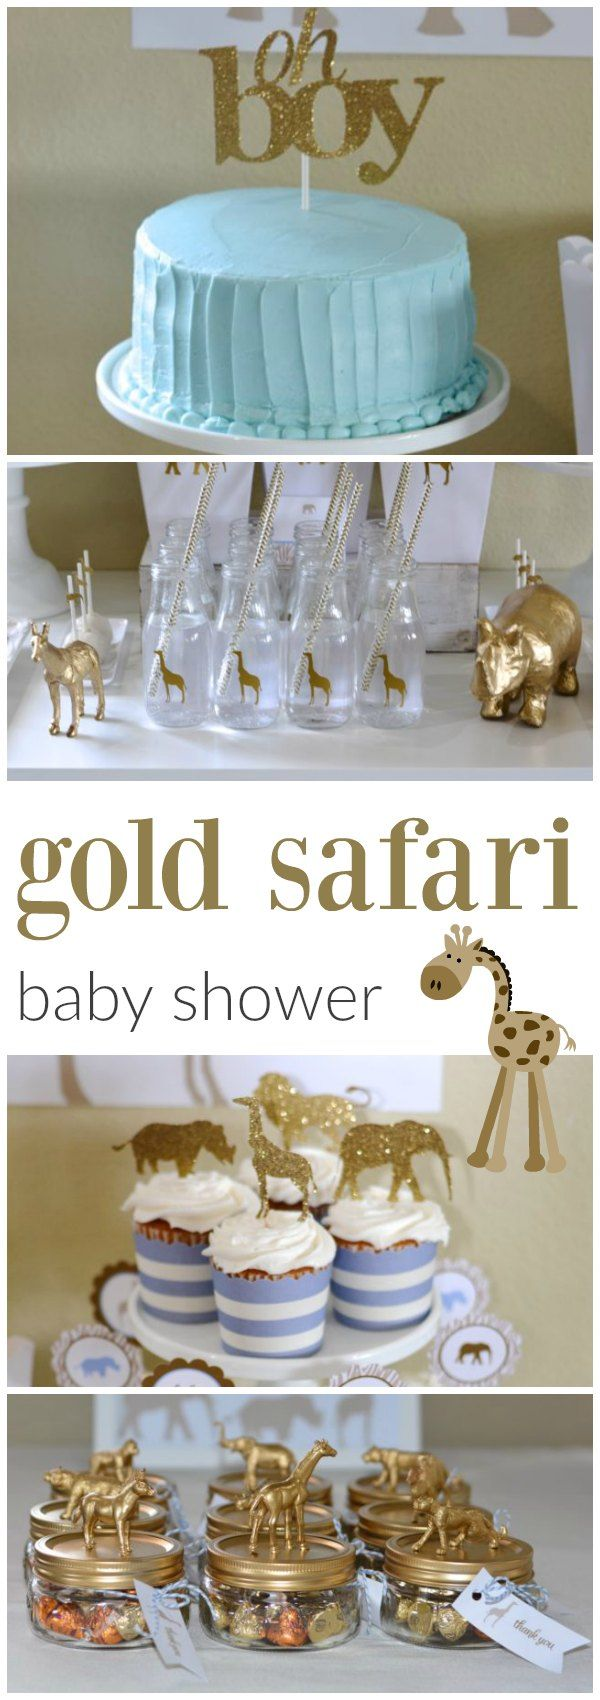 Such a sophisticated safari baby shower #gold